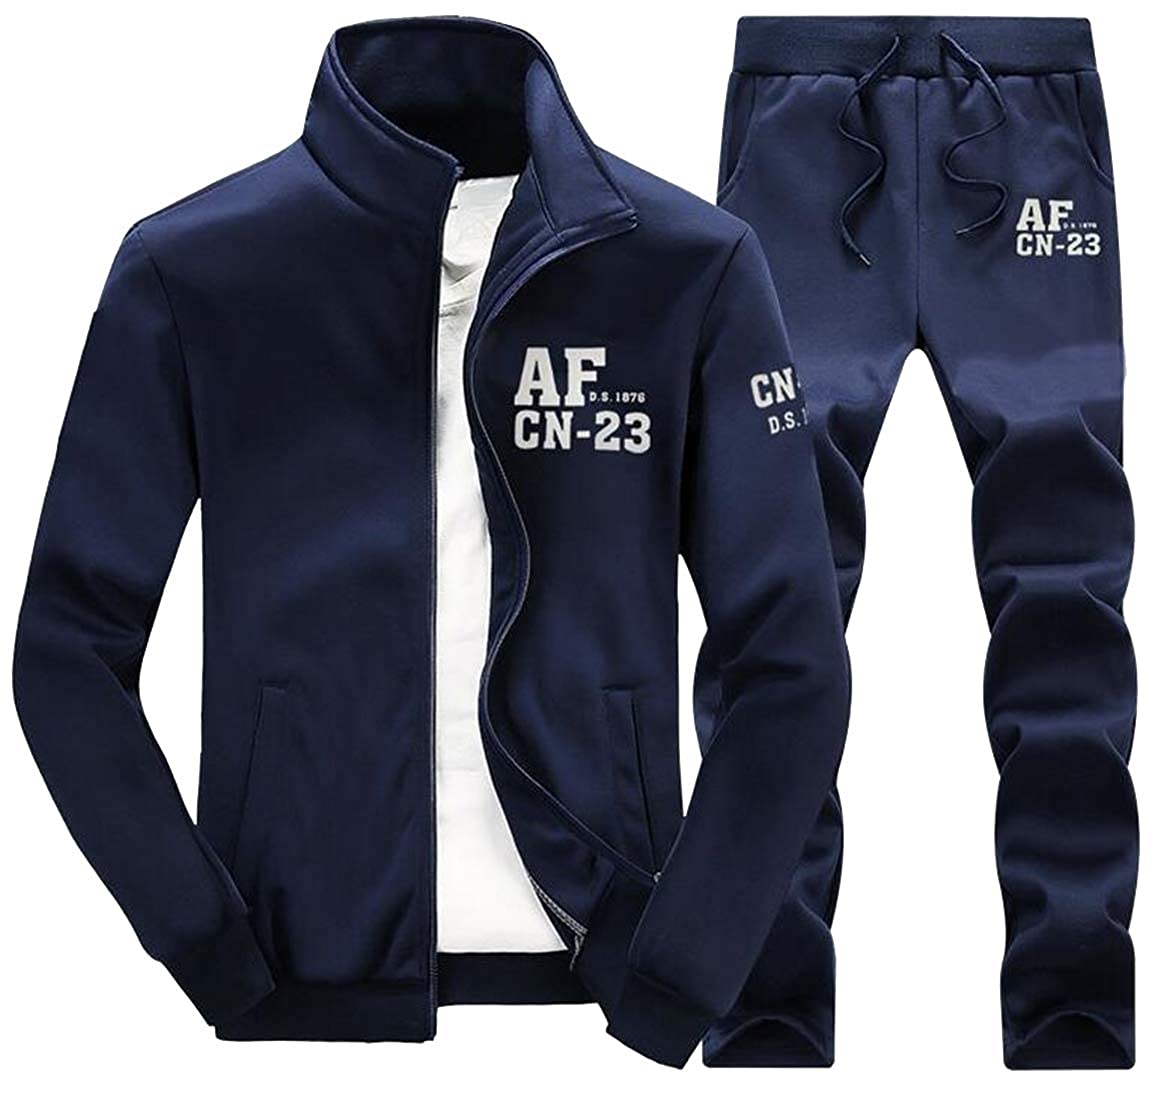 DFBB Mens Letter Print 2 Piece Suits Full-Zip Jacket /& Pants Casual Active Outfits Tracksuit Sweatsuits